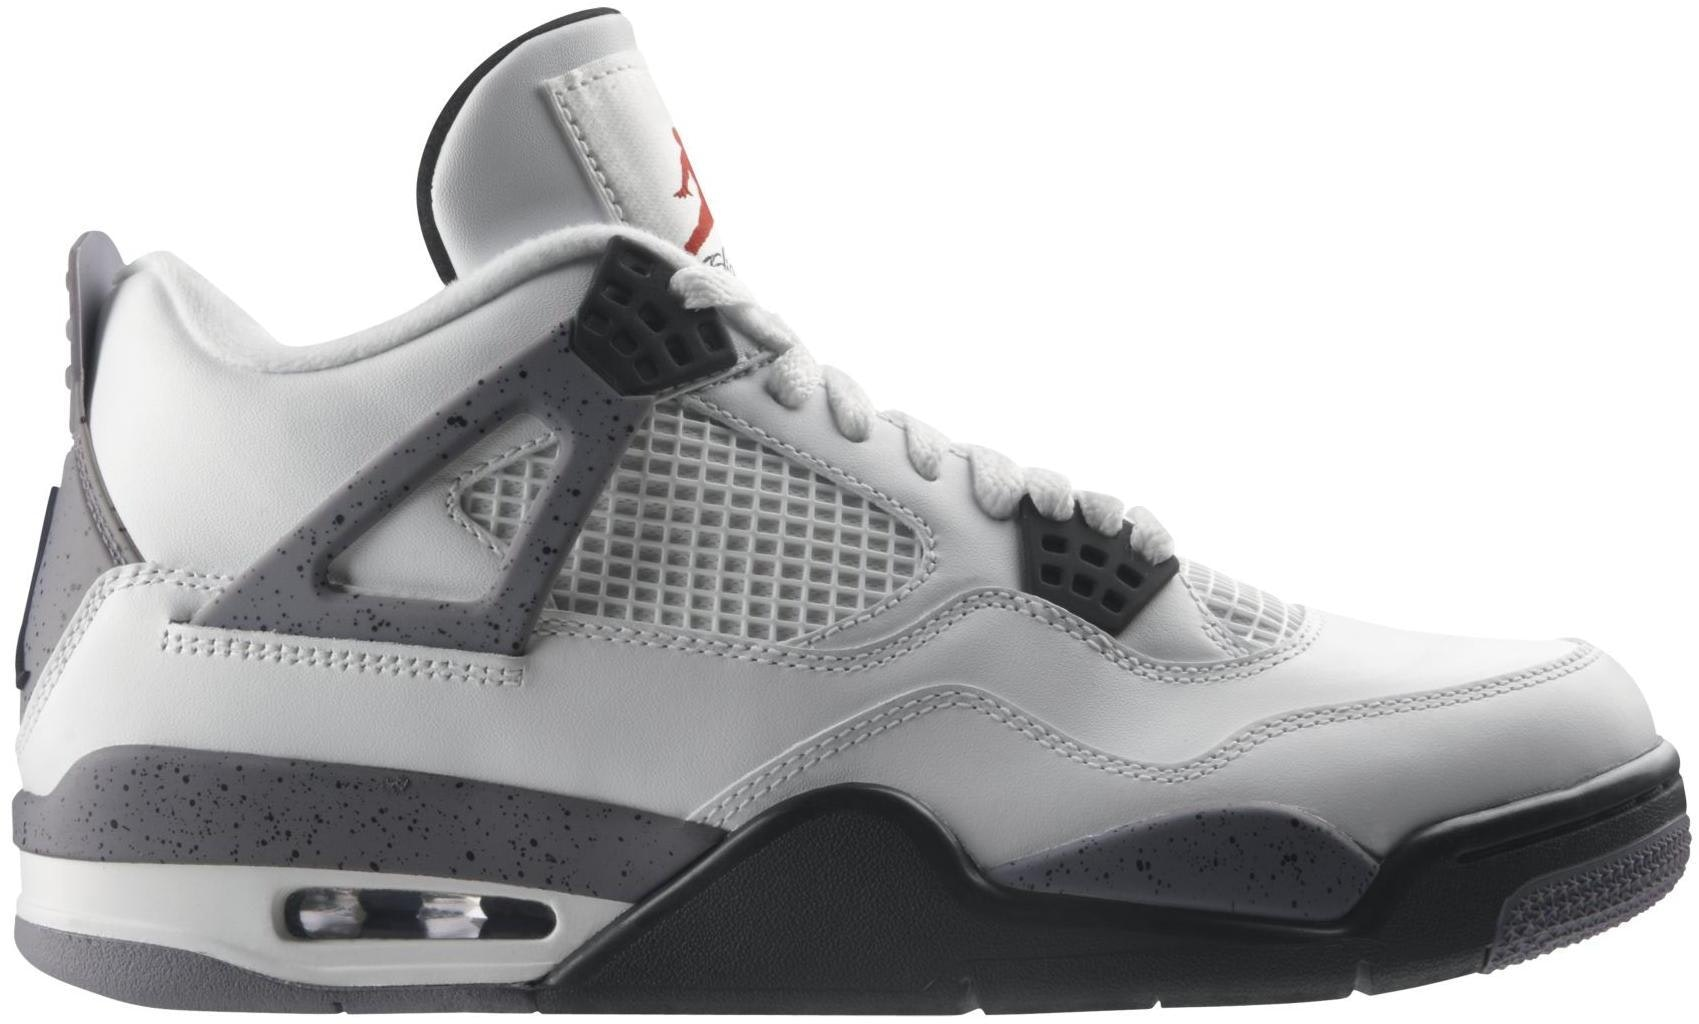 Jordan 4 Retro White Cement (2012)